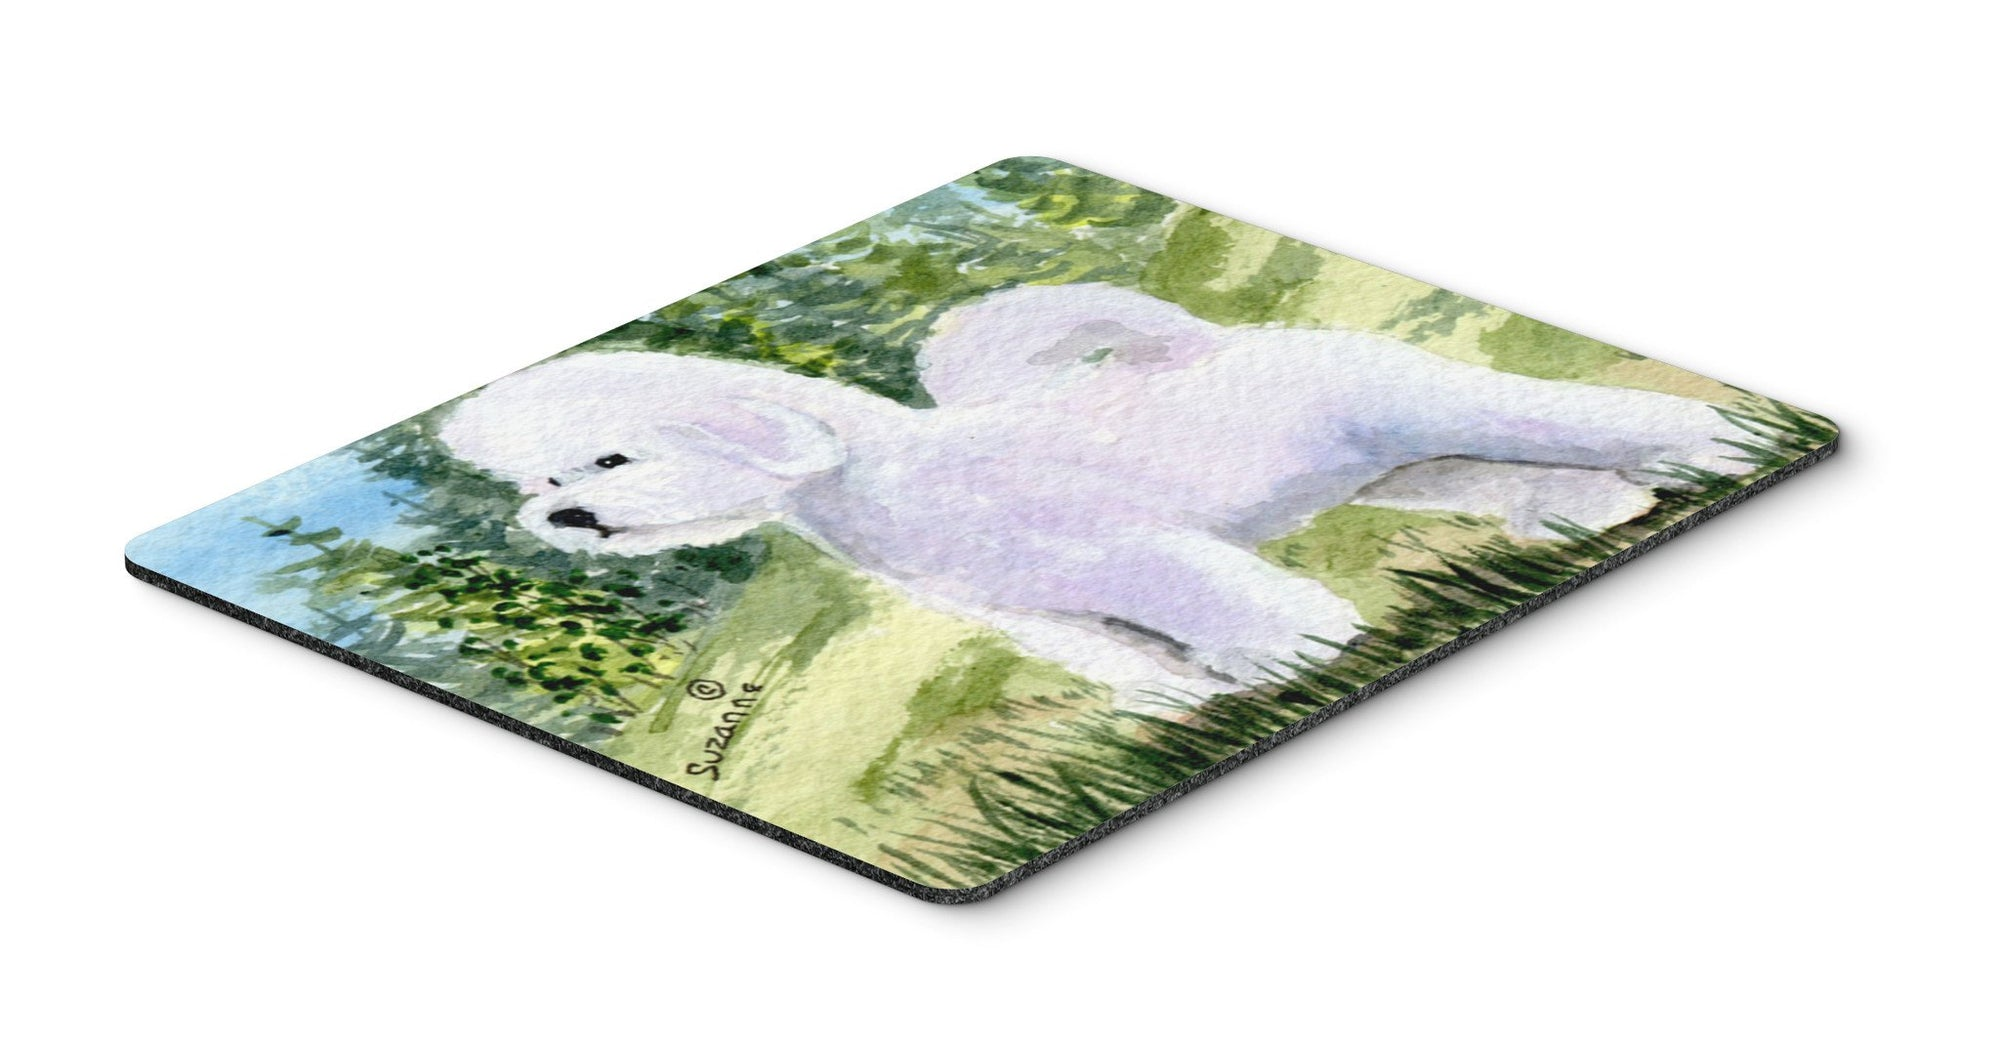 Bichon Frise Mouse pad, hot pad, or trivet by Caroline's Treasures